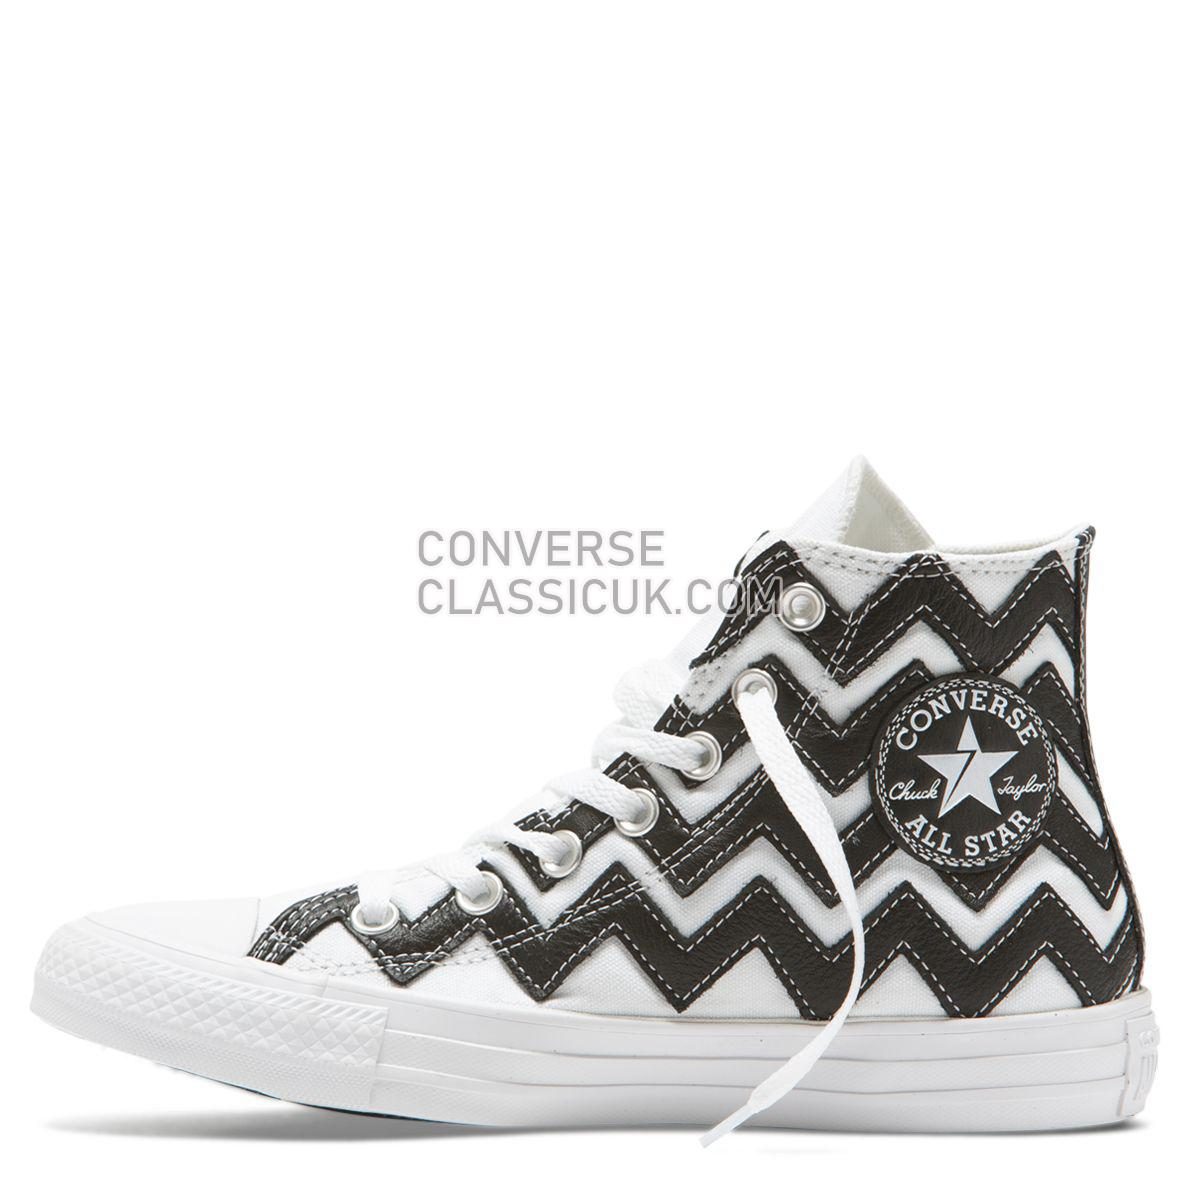 Converse Chuck Taylor All Star Mission-V High Top White Womens 565376 White/Black/White Shoes